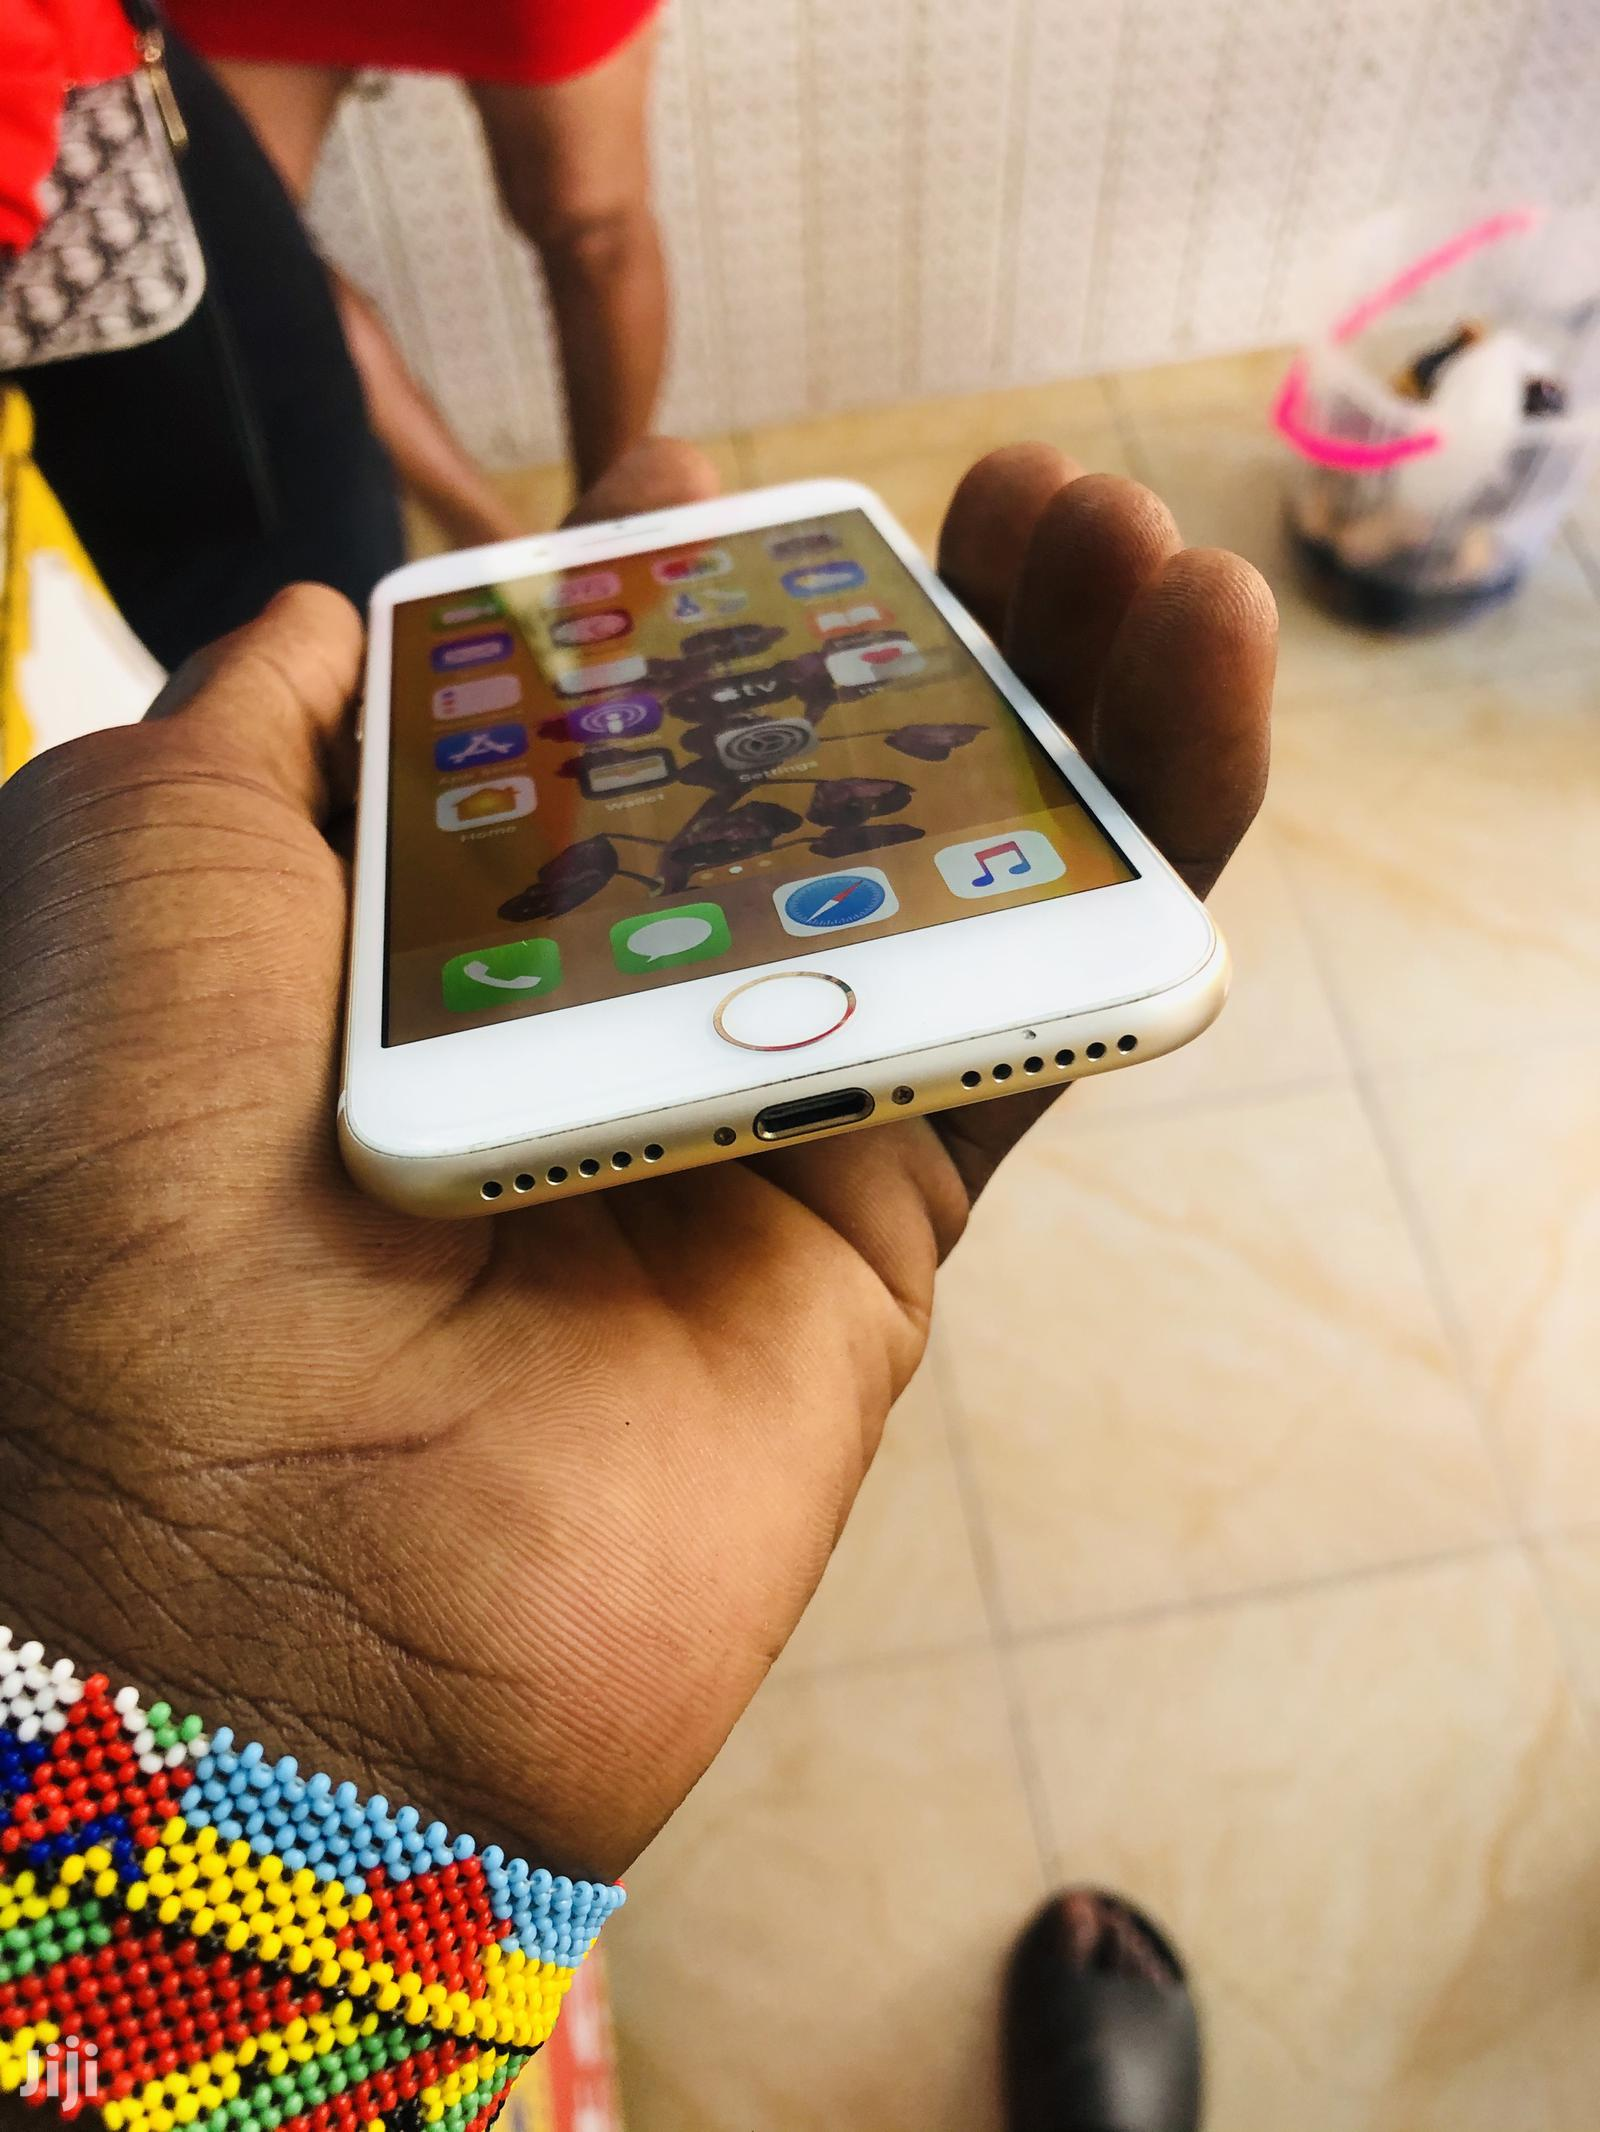 Apple iPhone 7 32 GB Gold | Mobile Phones for sale in Osu, Greater Accra, Ghana